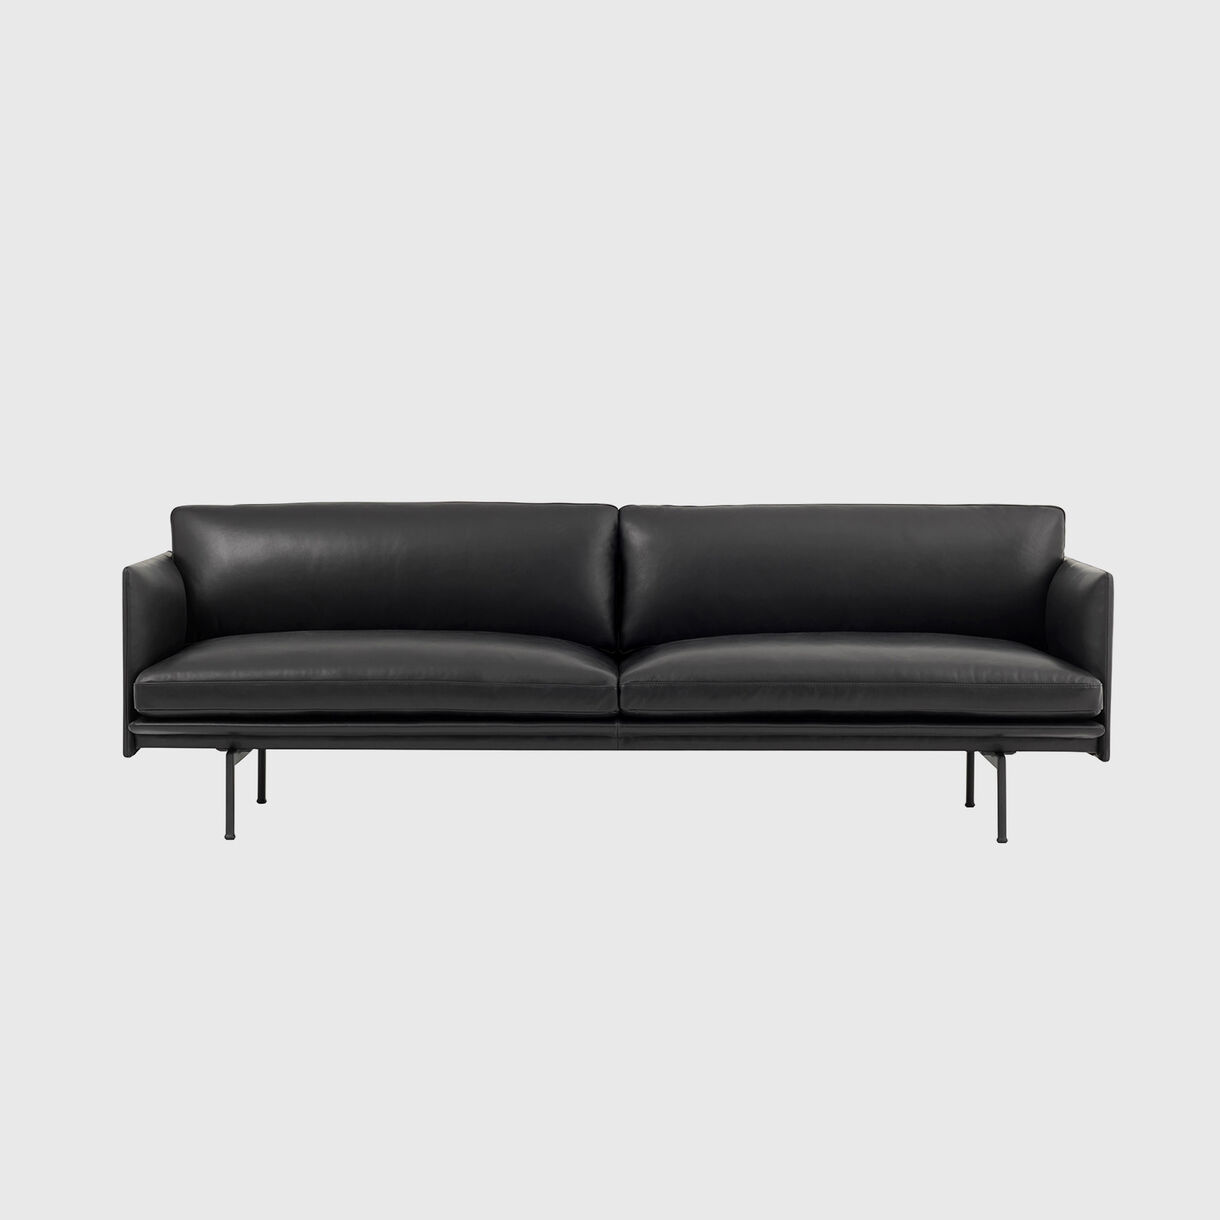 Outline 3 Seater Sofa, Black Leather